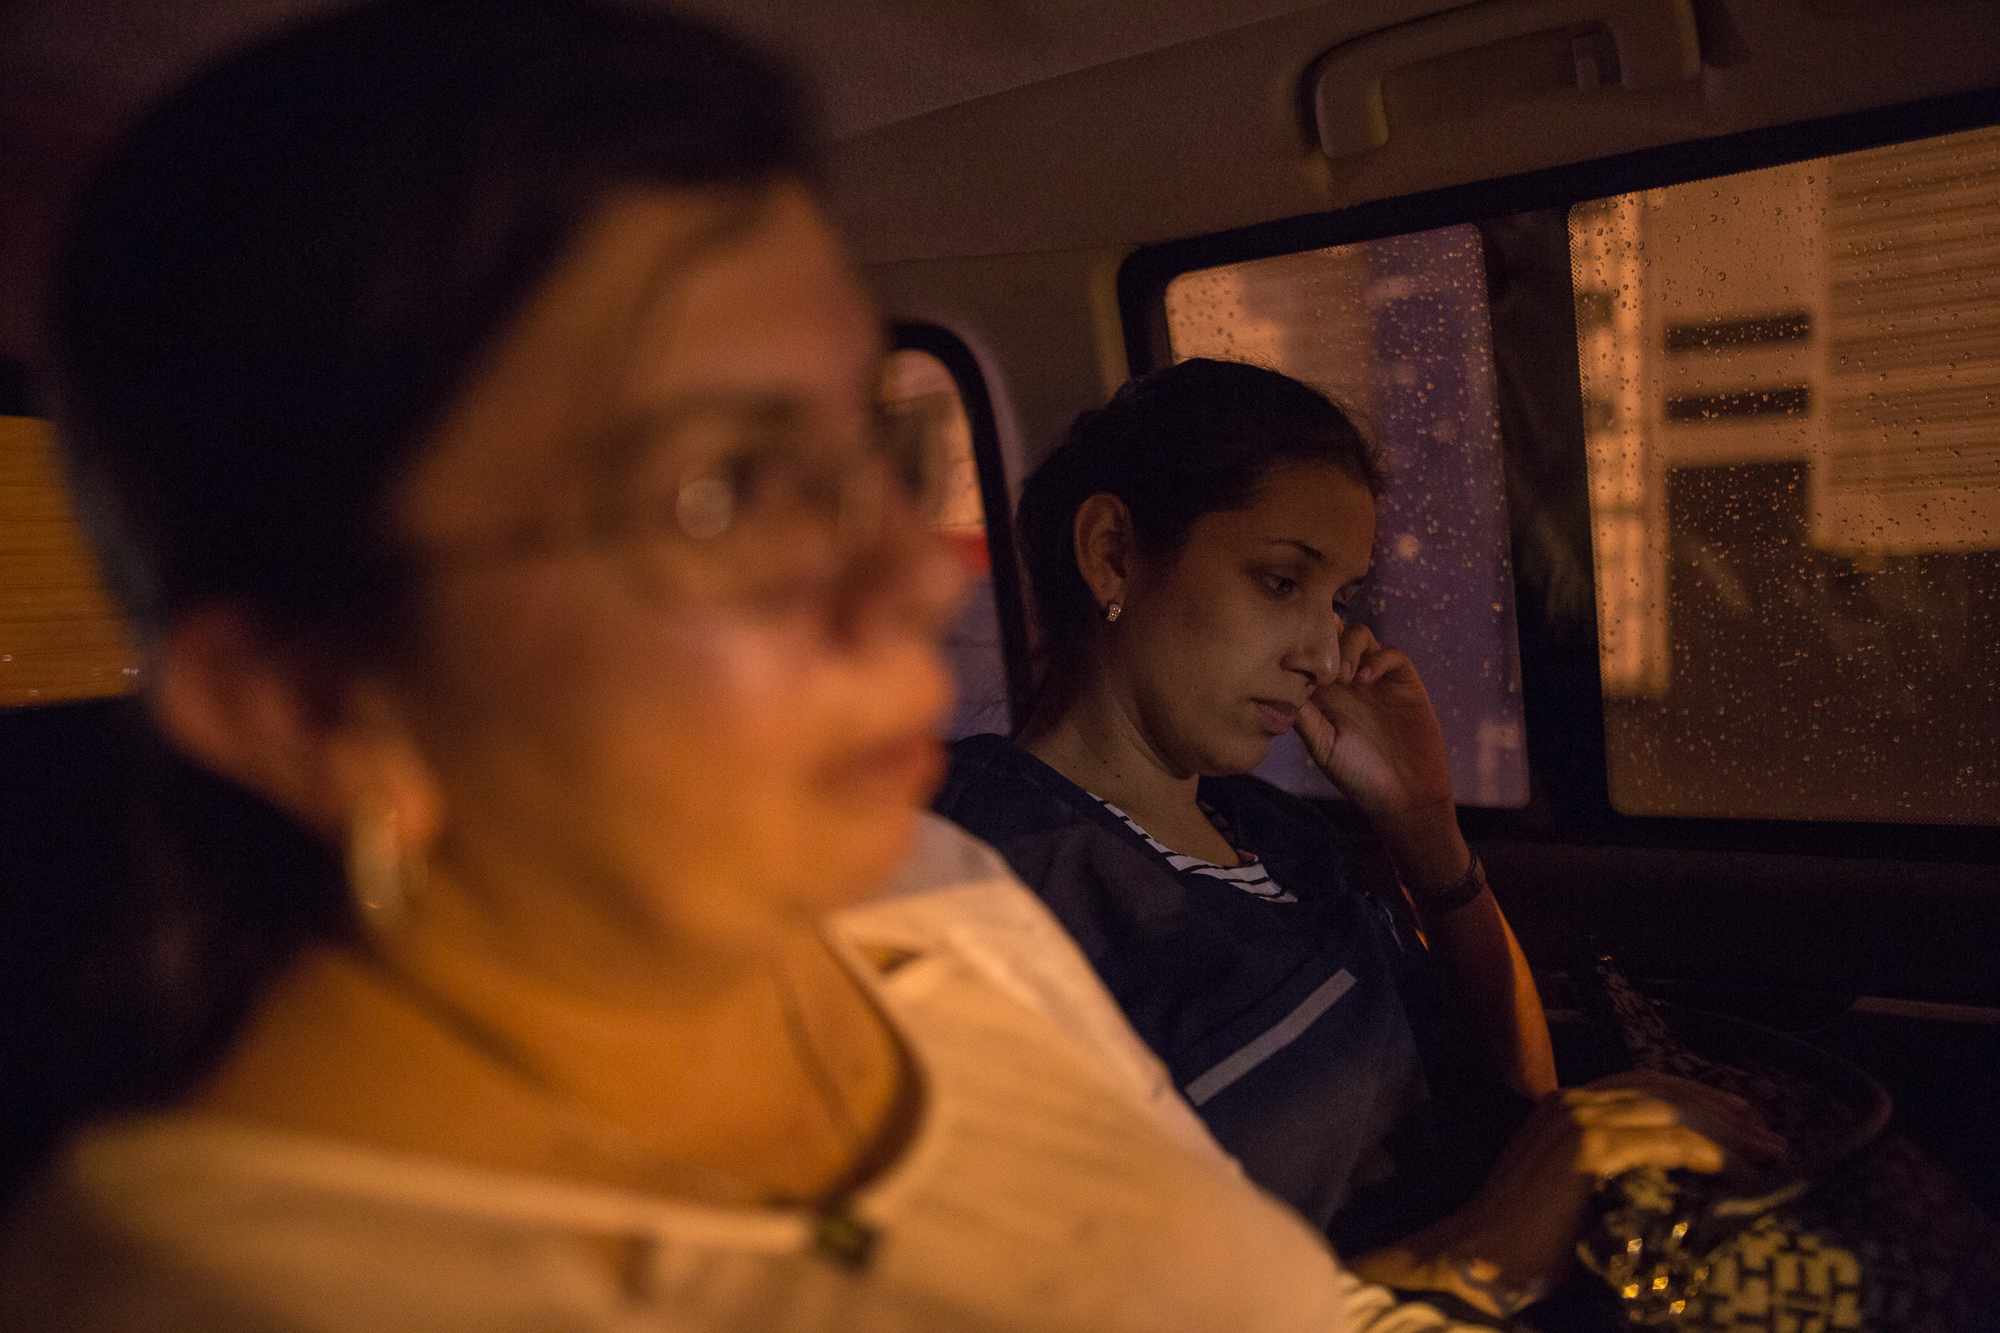 Julia Figueroa (left), human rights lawyer and leader of the CCALP, all women's legal collective, rides home with a young member of her collective in her state assigned bullet proof car after a syndicate meeting in Bucaramanga, Colombia. May 8, 2017.